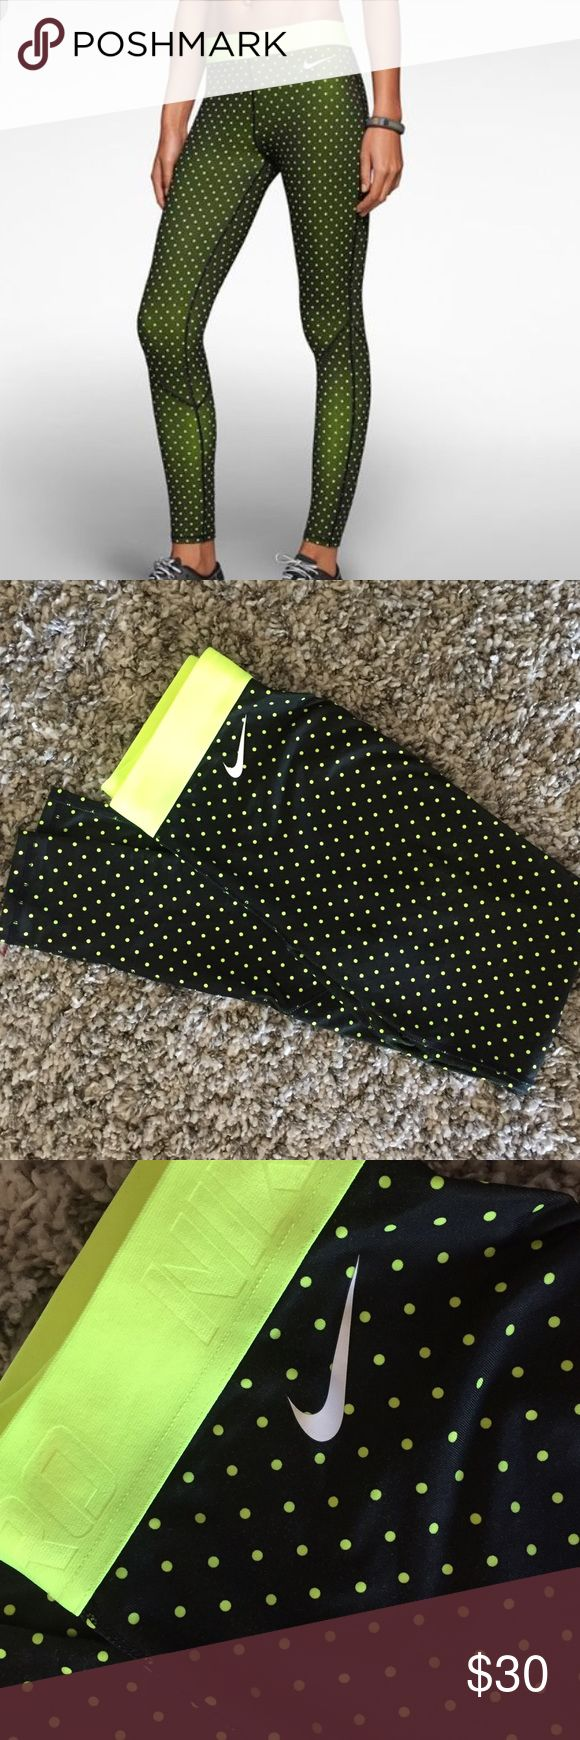 Nike pro hyperwarm polka dot tights leggings Women's Nike Pro hyperwarm dri-fit polka dot leggings/tights. Size small. Only worn a few times. No tags. Color is neon yellowish-green (like a tennis ball) and black. Nike Pants Leggings